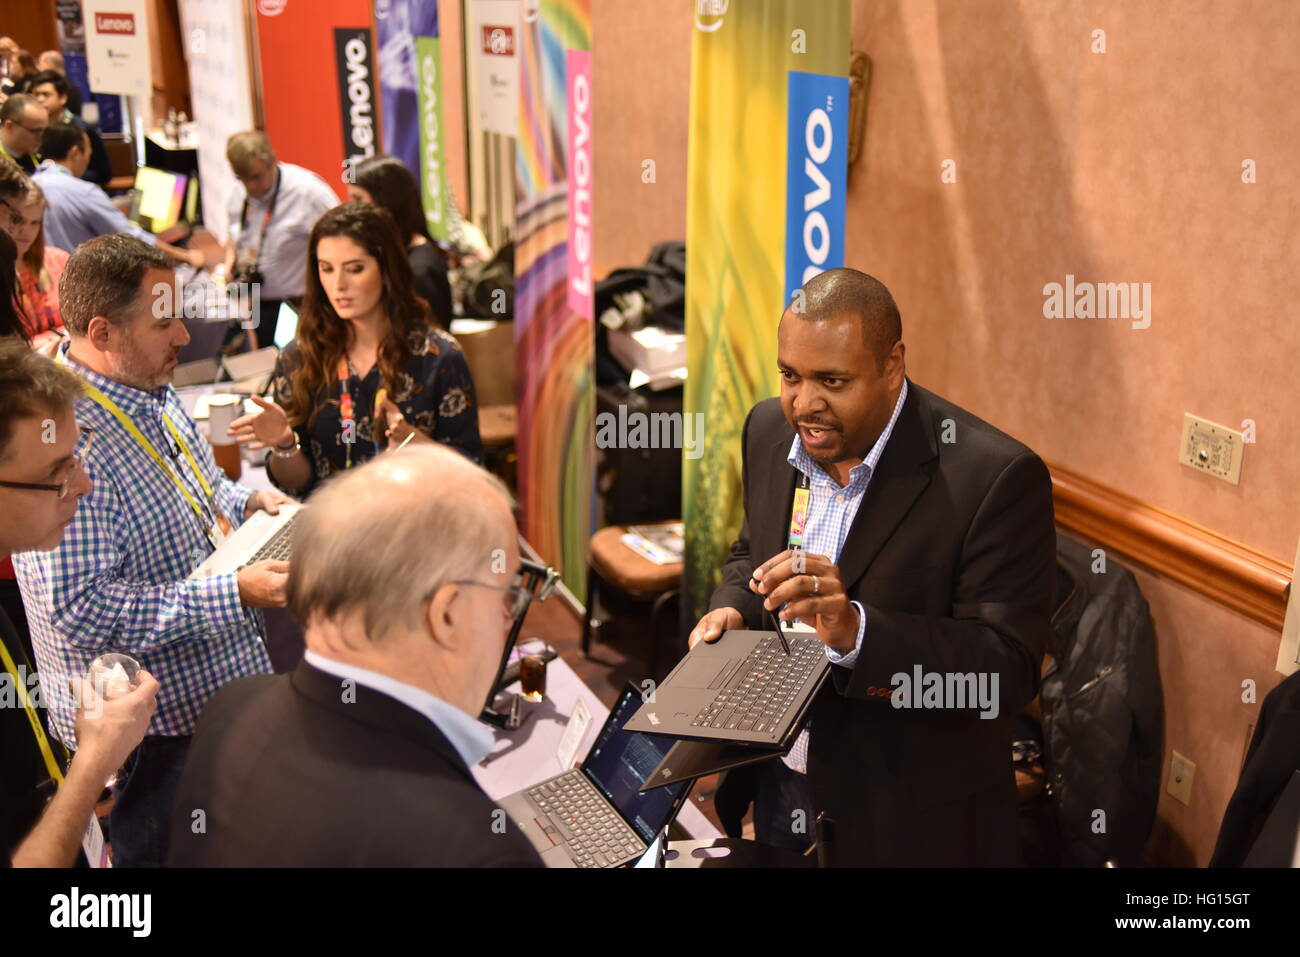 Las Vegas, Nevada, 3rd Jan, 2017.  People gather around Lenovo's booth during 'CES Unveiled,' a media - Stock Image